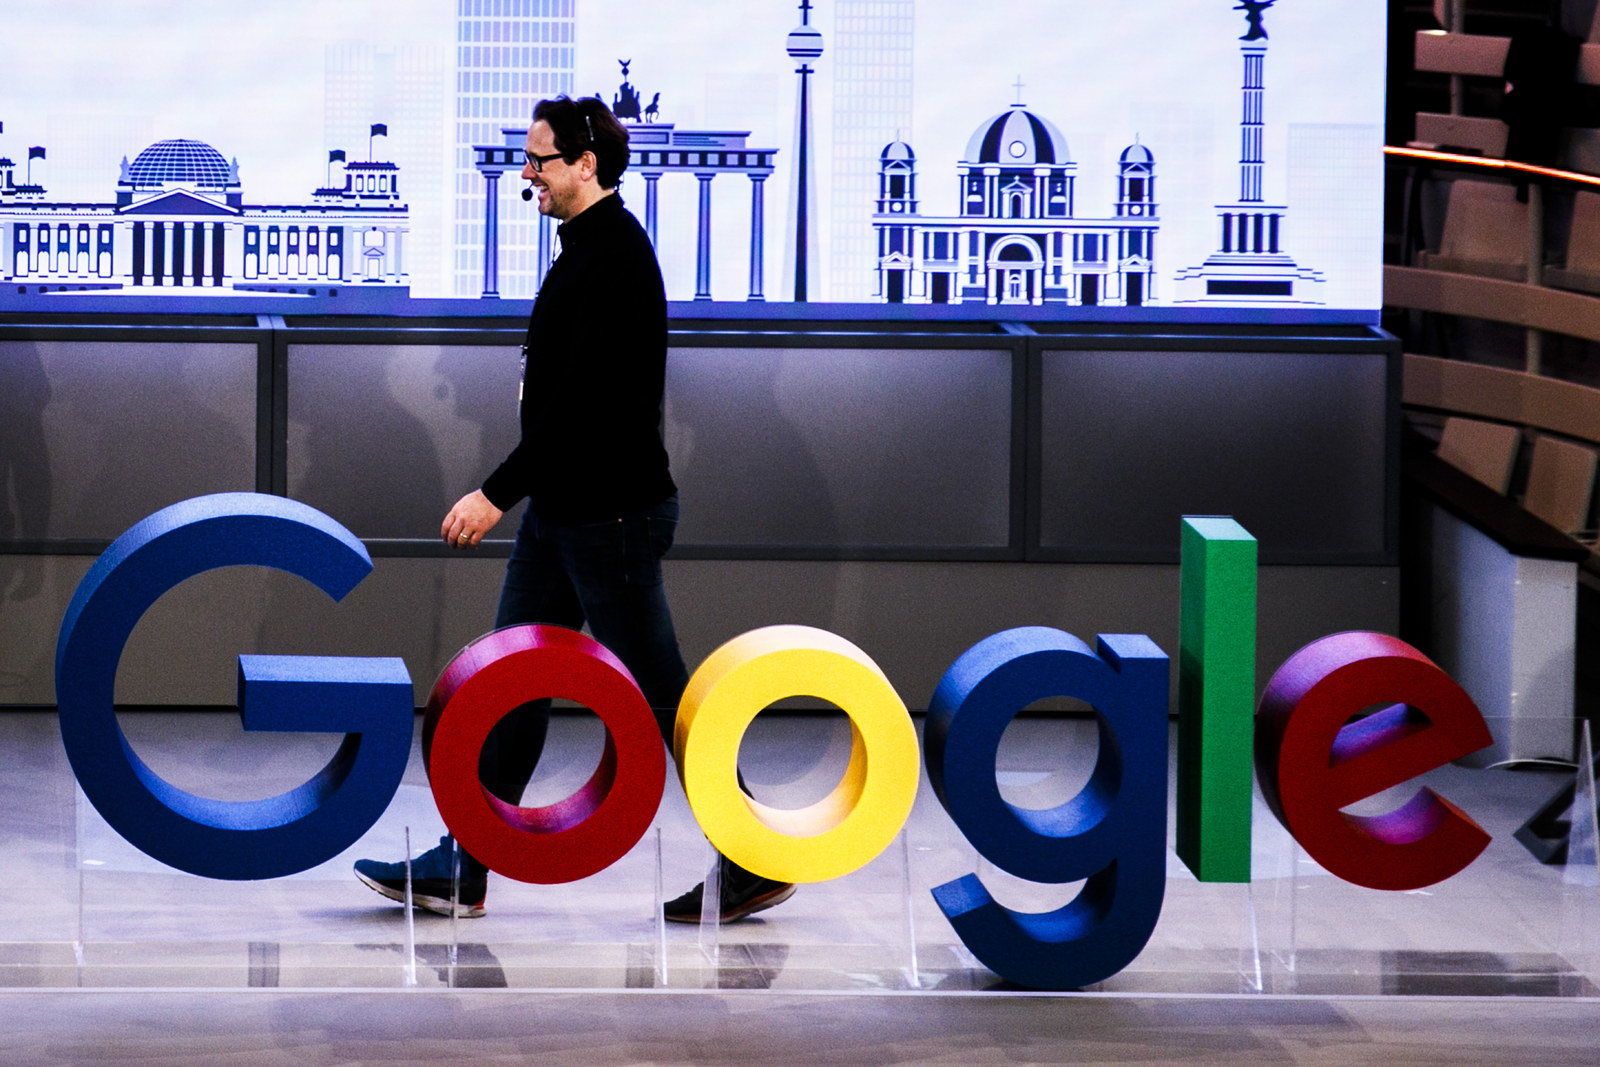 This New Account Protection Feature From Google Is Designed To Stop Hacks From Spreading